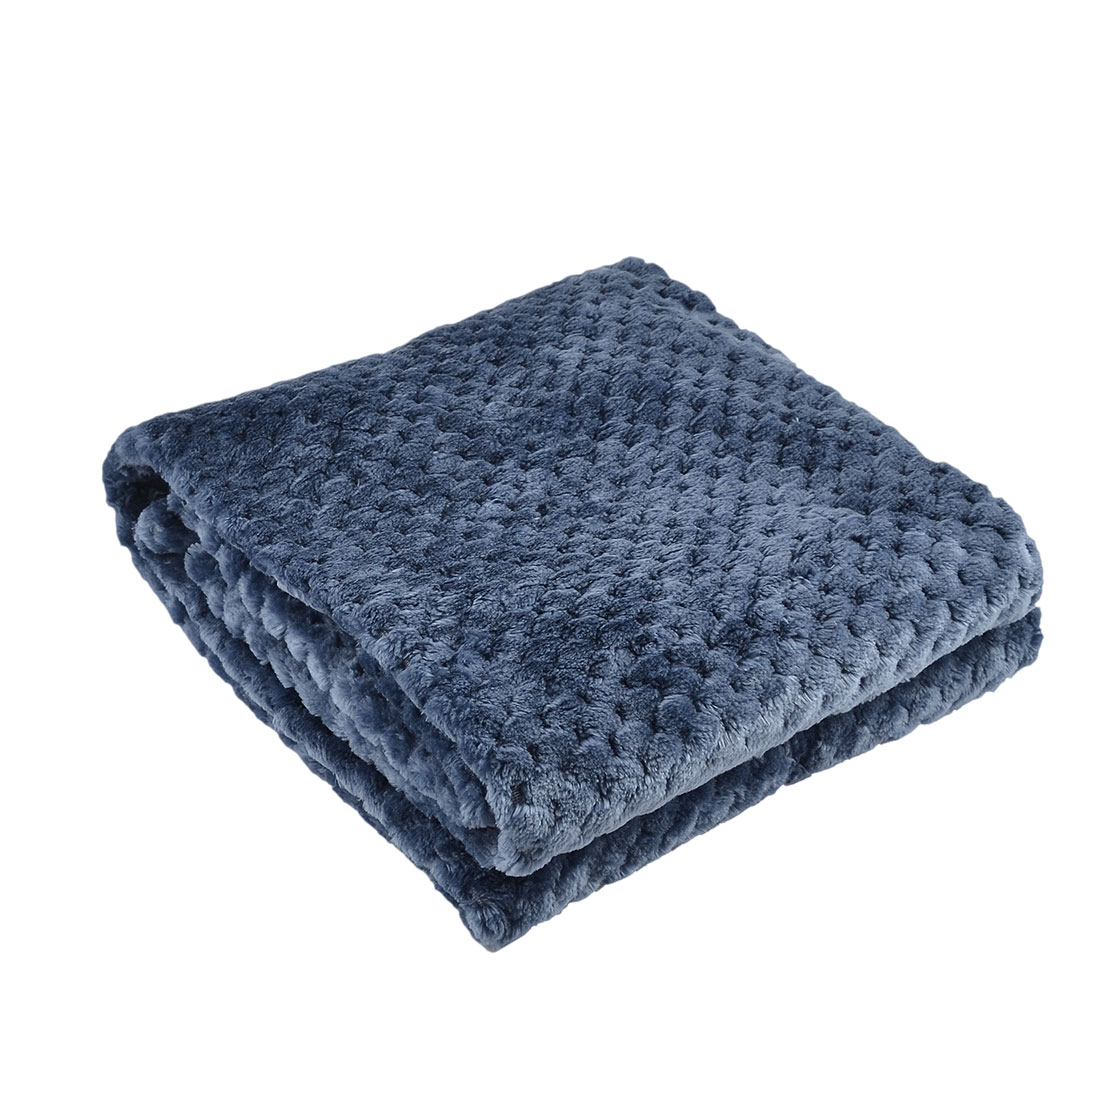 Home Bedroom Travel Warm Soft Mesh Blanket Rug Plush Fleece Bed Quilt Yale Blue